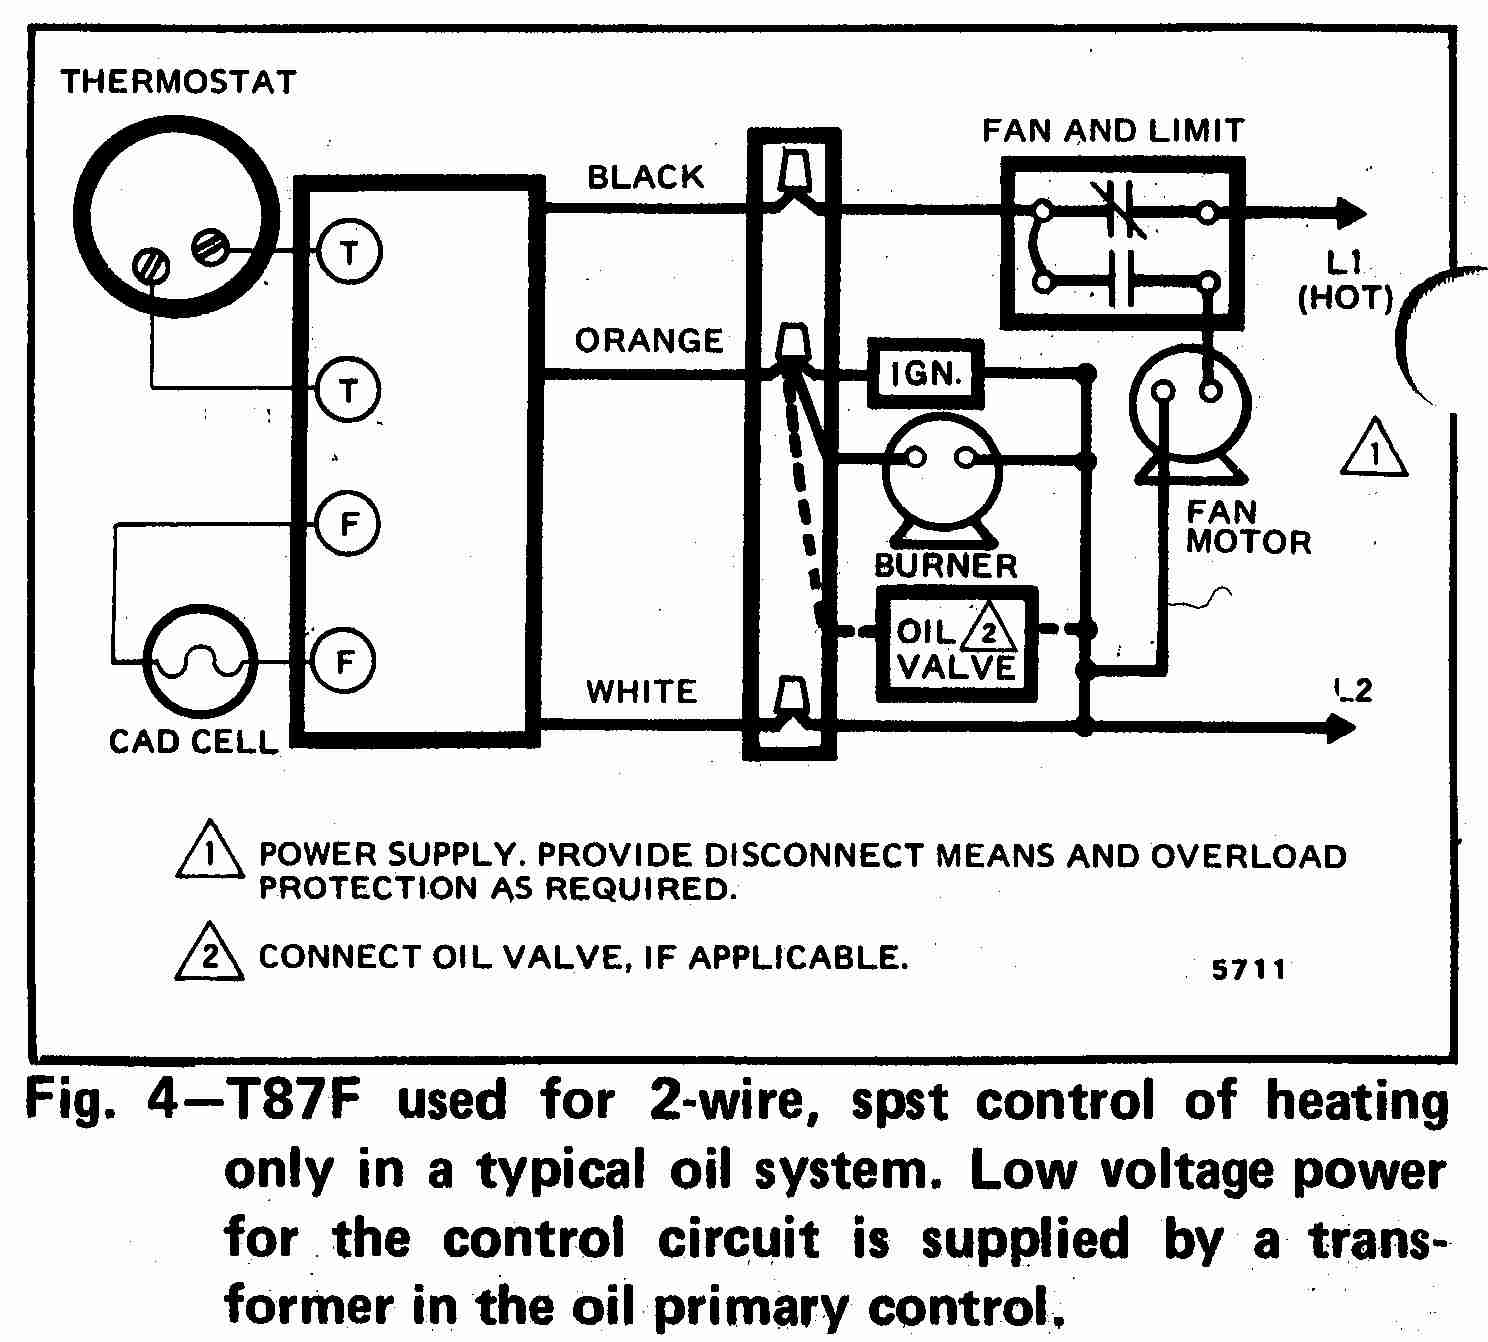 TT_T87F_0002_2W_DJF room thermostat wiring diagrams for hvac systems heating and air conditioning wiring diagrams at love-stories.co